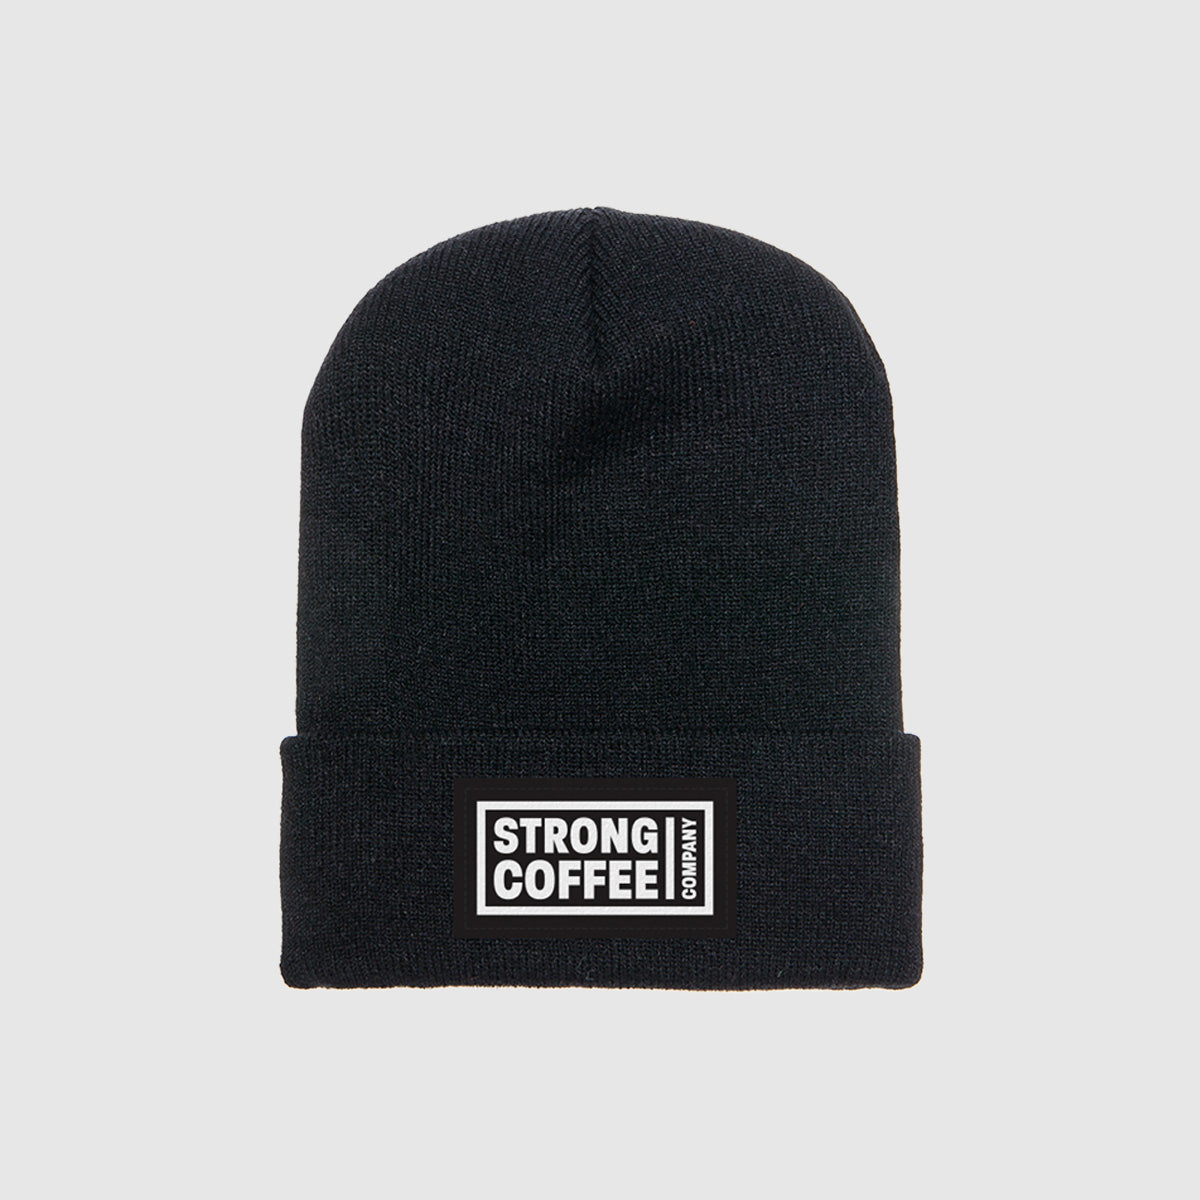 Beanie - Strong Coffee Company